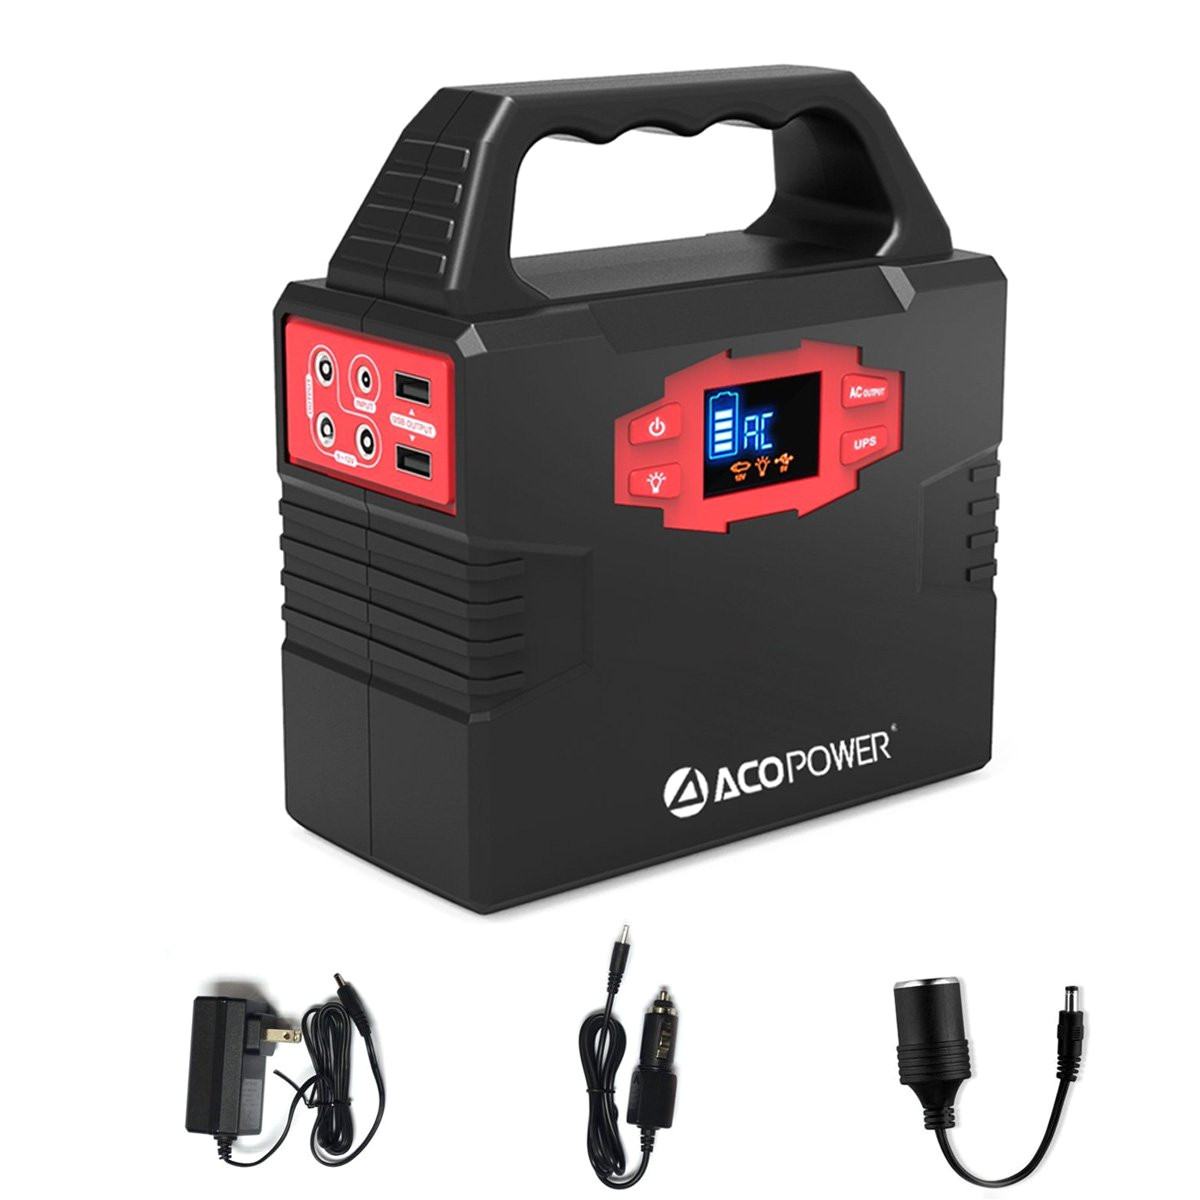 amazon com acopower 150wh 40 800mah portable generator power supply solar energy storage lithium ion battery with ac power inverters 110v 60hz